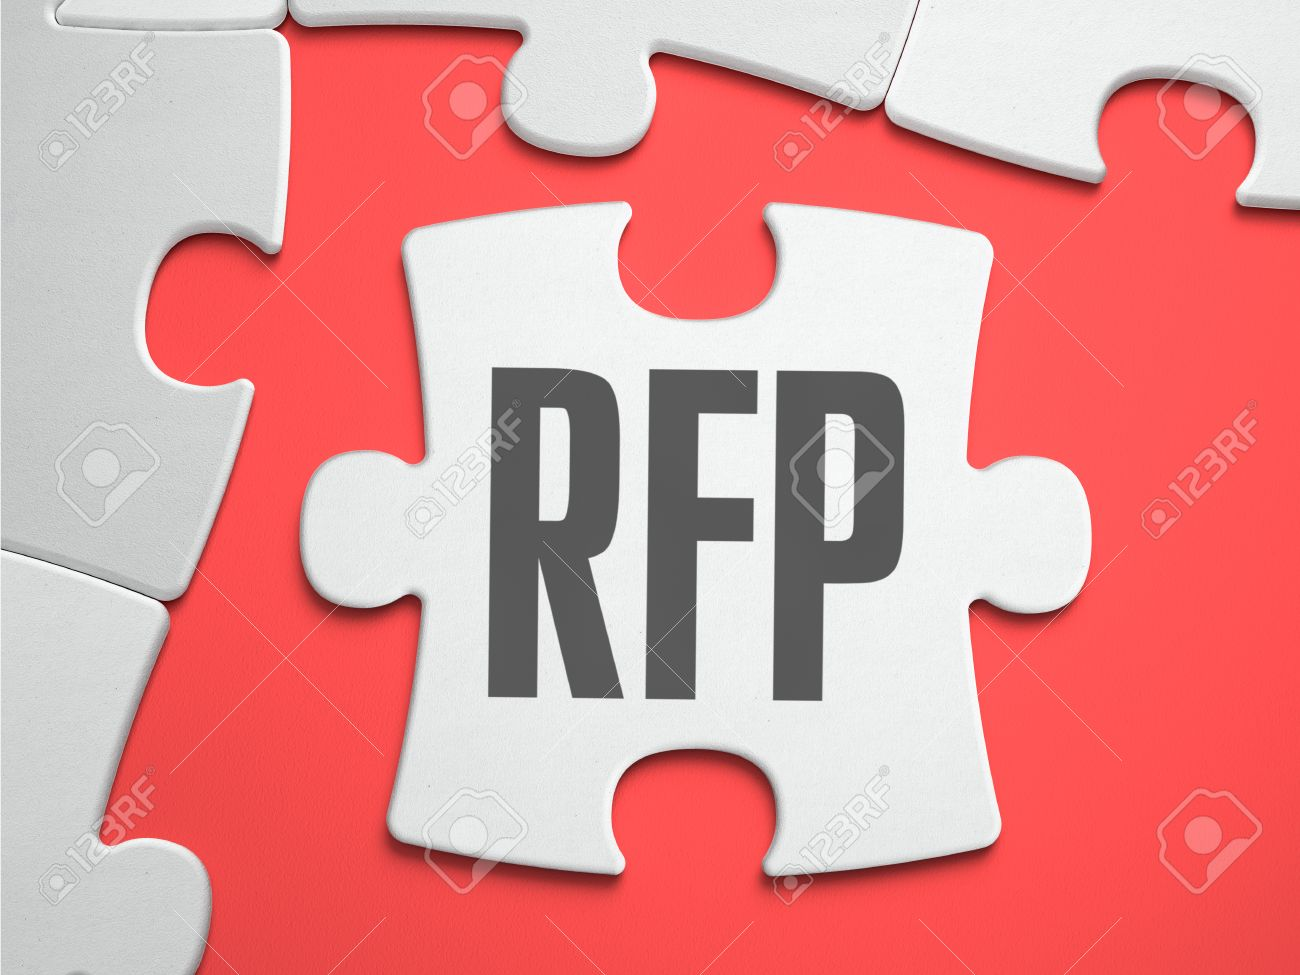 RFP   Request For Proposal   Text On Puzzle On The Place Of Missing     RFP   Request for Proposal   Text on Puzzle on the Place of Missing Pieces